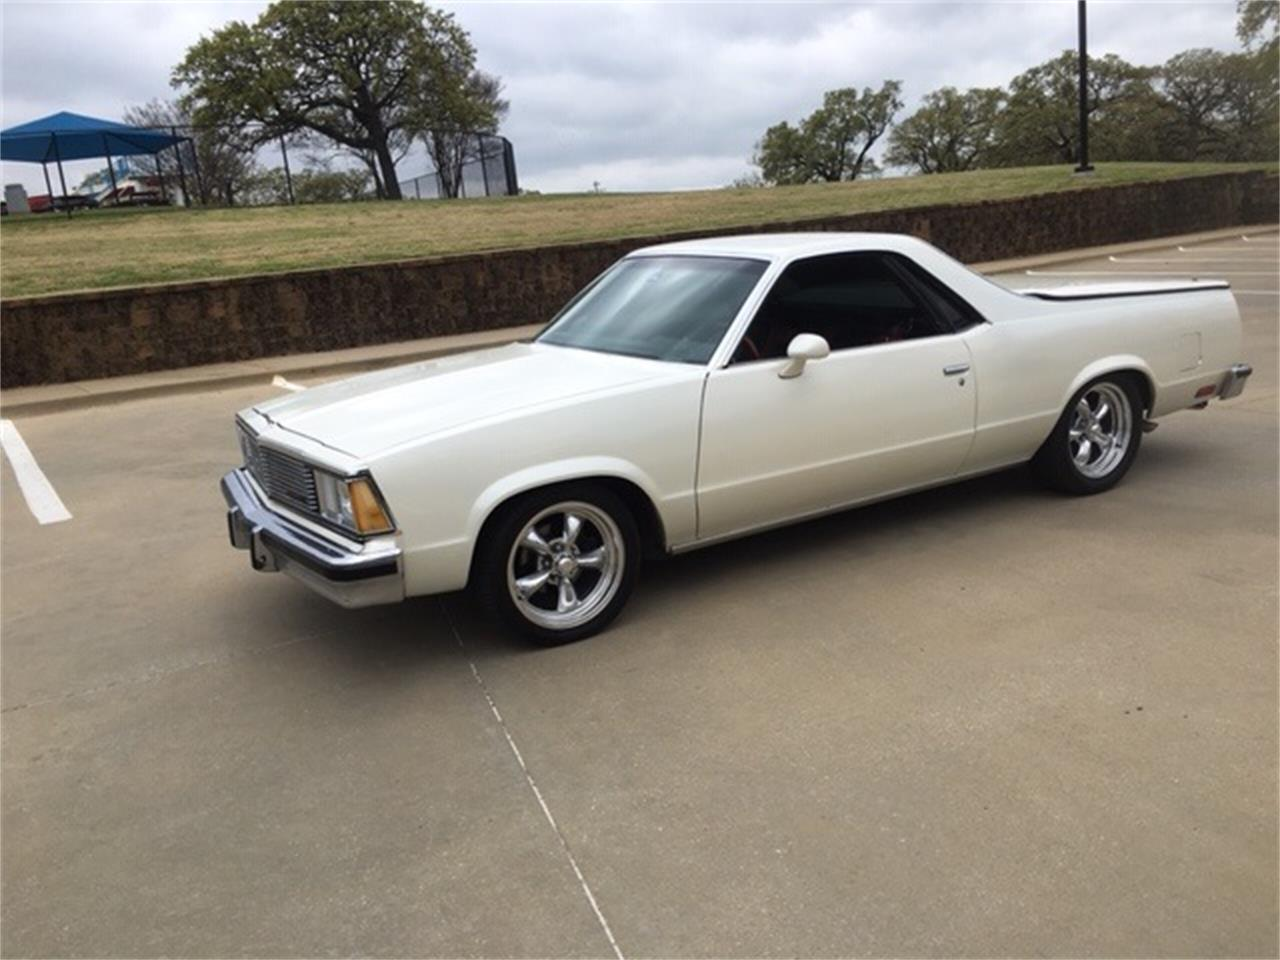 Large Picture of 1981 Chevrolet El Camino located in Arlington Texas - $25,000.00 Offered by a Private Seller - PR95